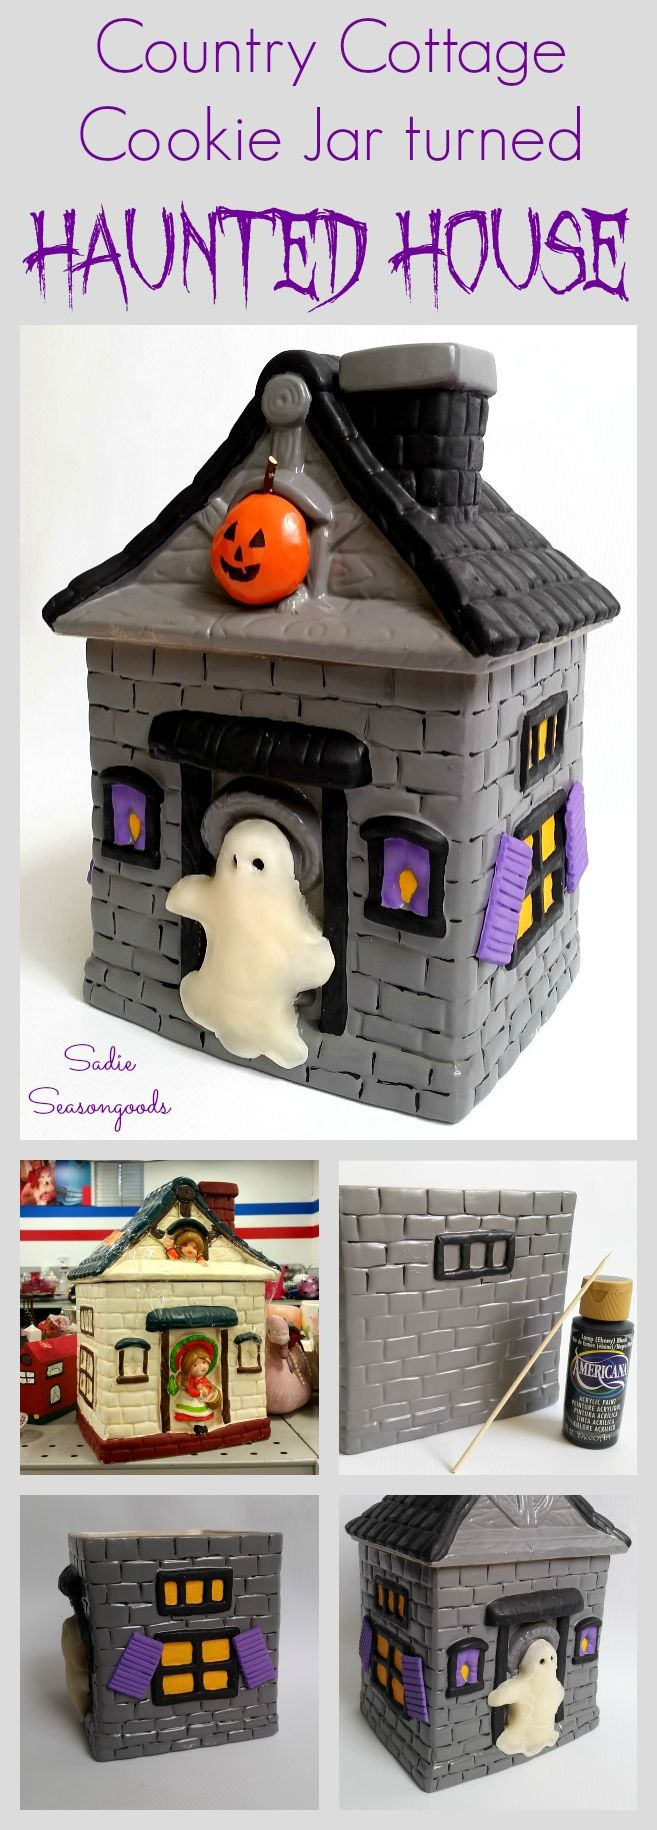 Halloween Cookie Jar and Haunted House from a Vintage